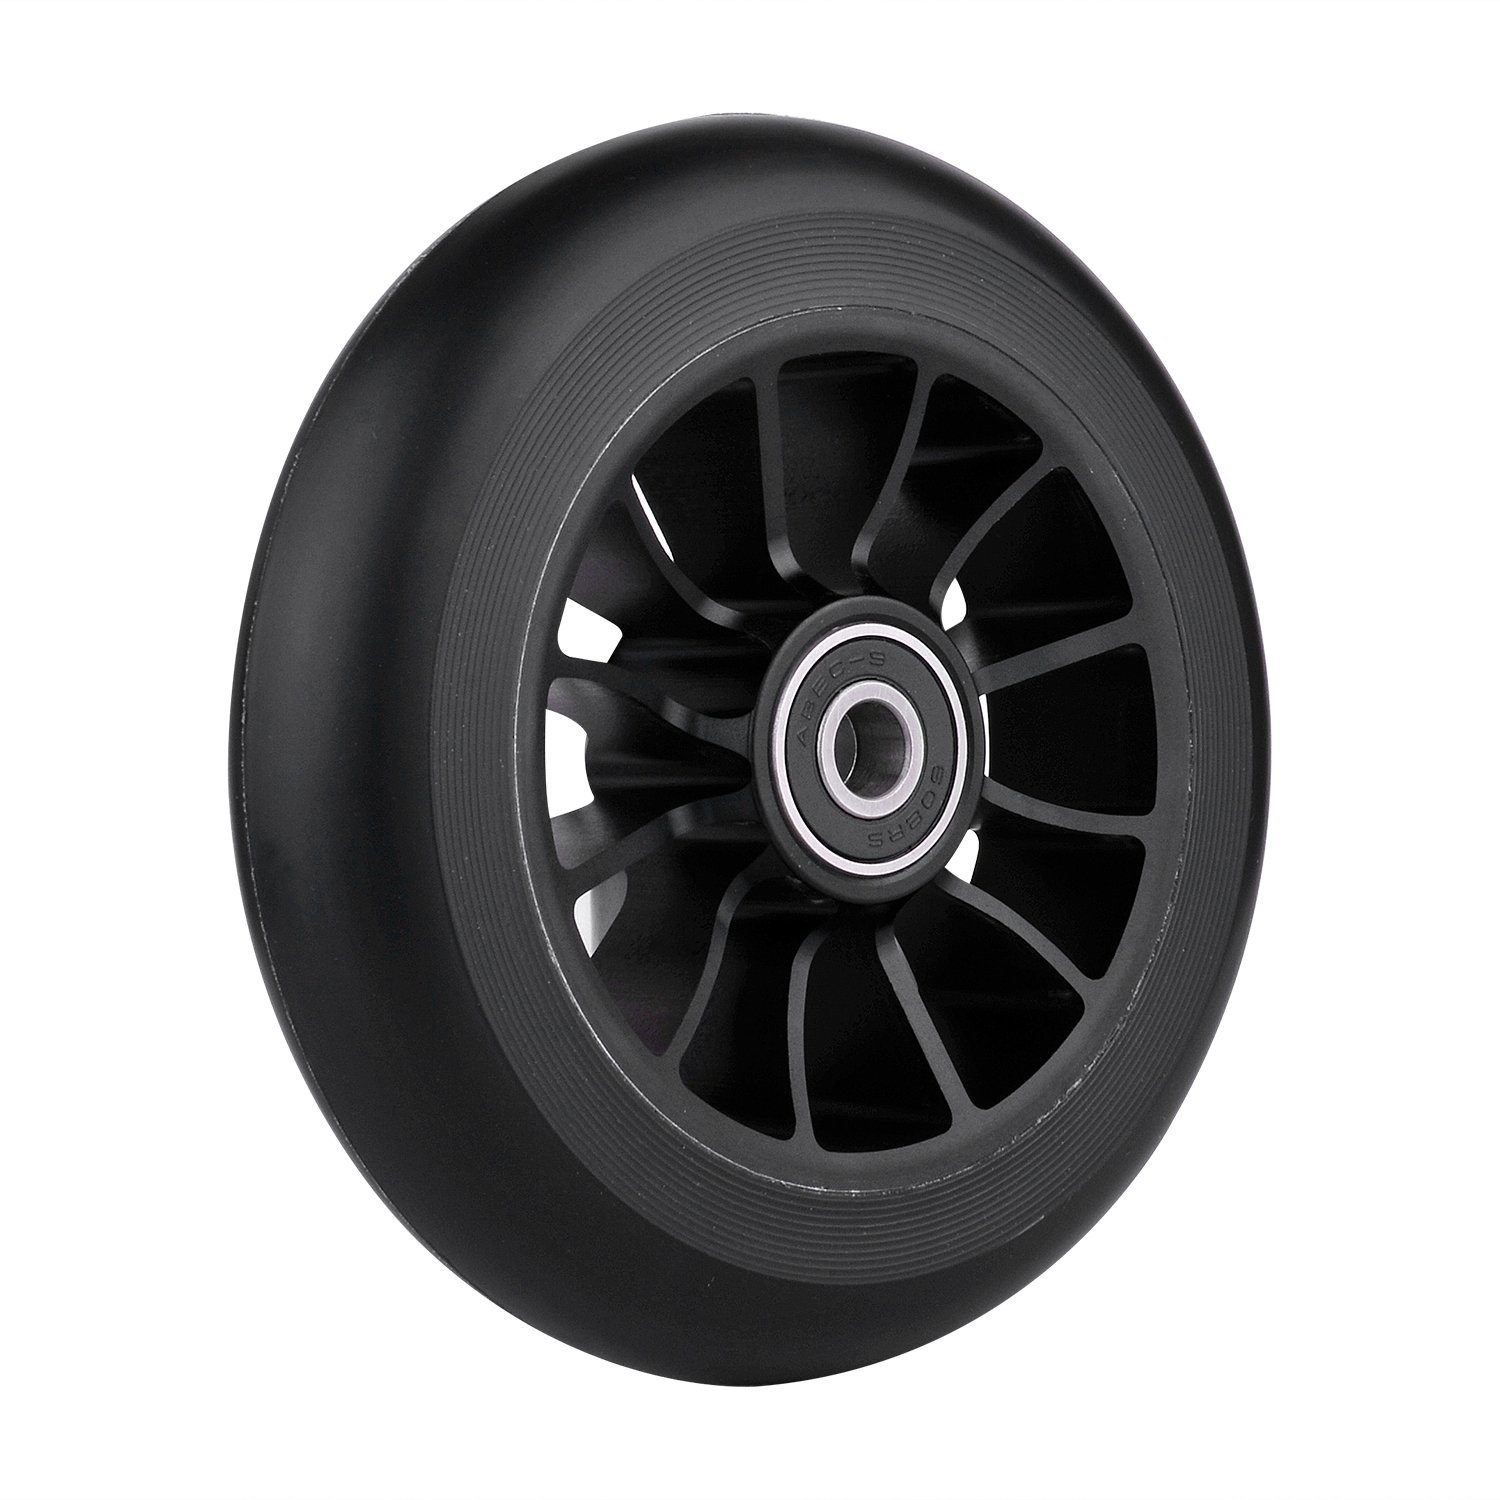 Z-FIRST Replacement 110mm Pro Scooter Wheel with Abec 9 Bearings Fit for MGP/Razor/Lucky Pro Scooters (Black)